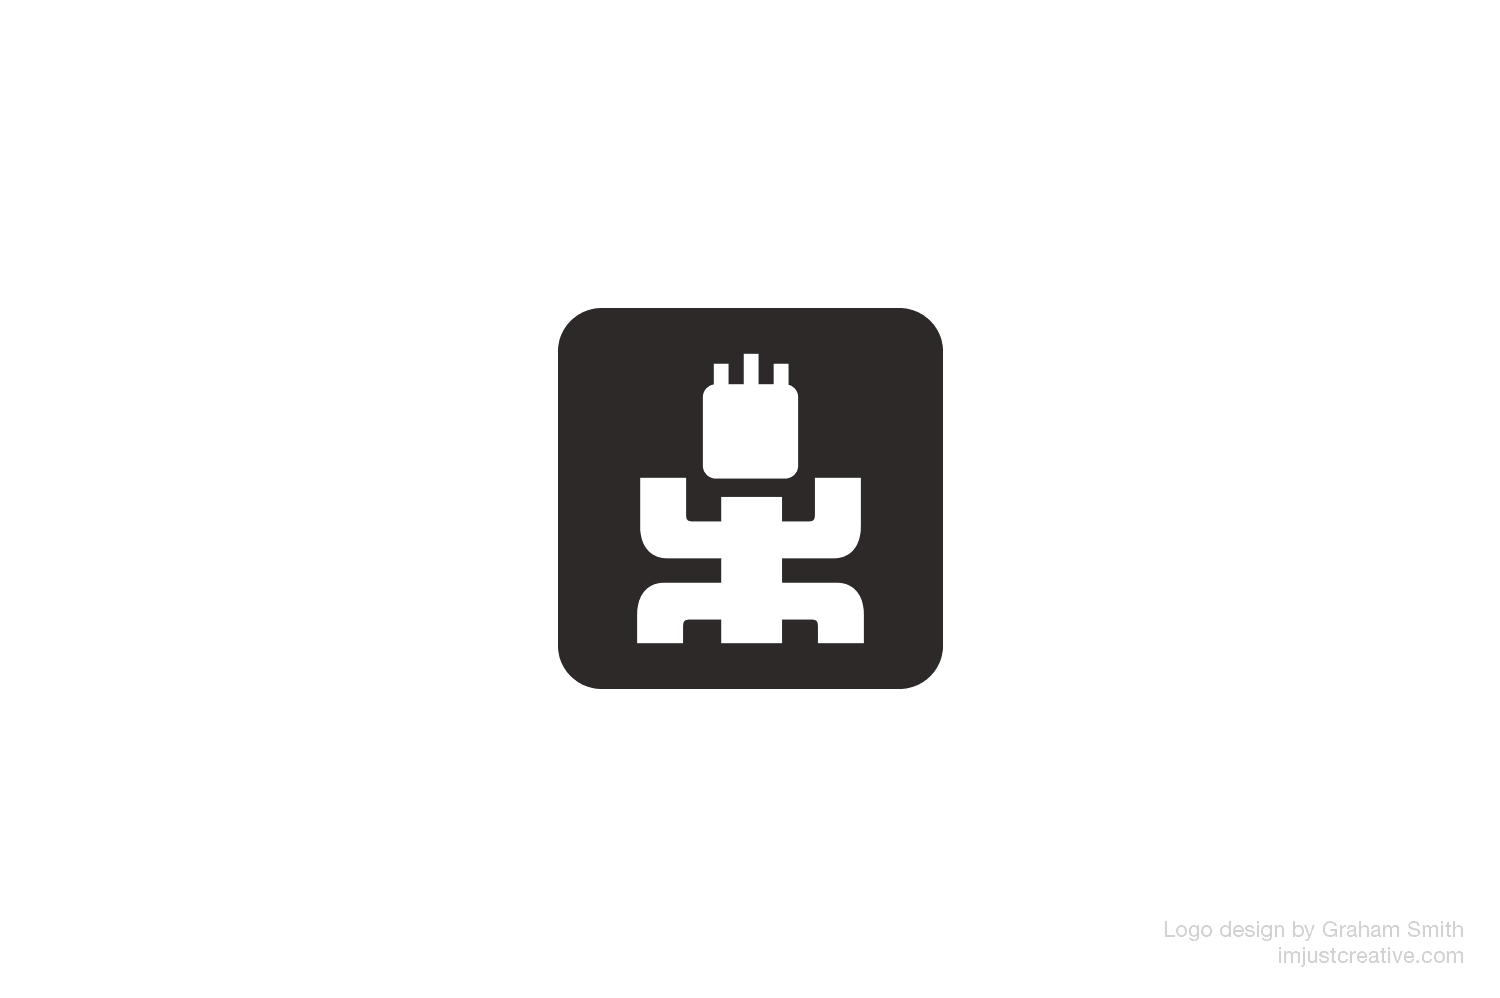 KeyboardKahuna logo design 2 by graham smith